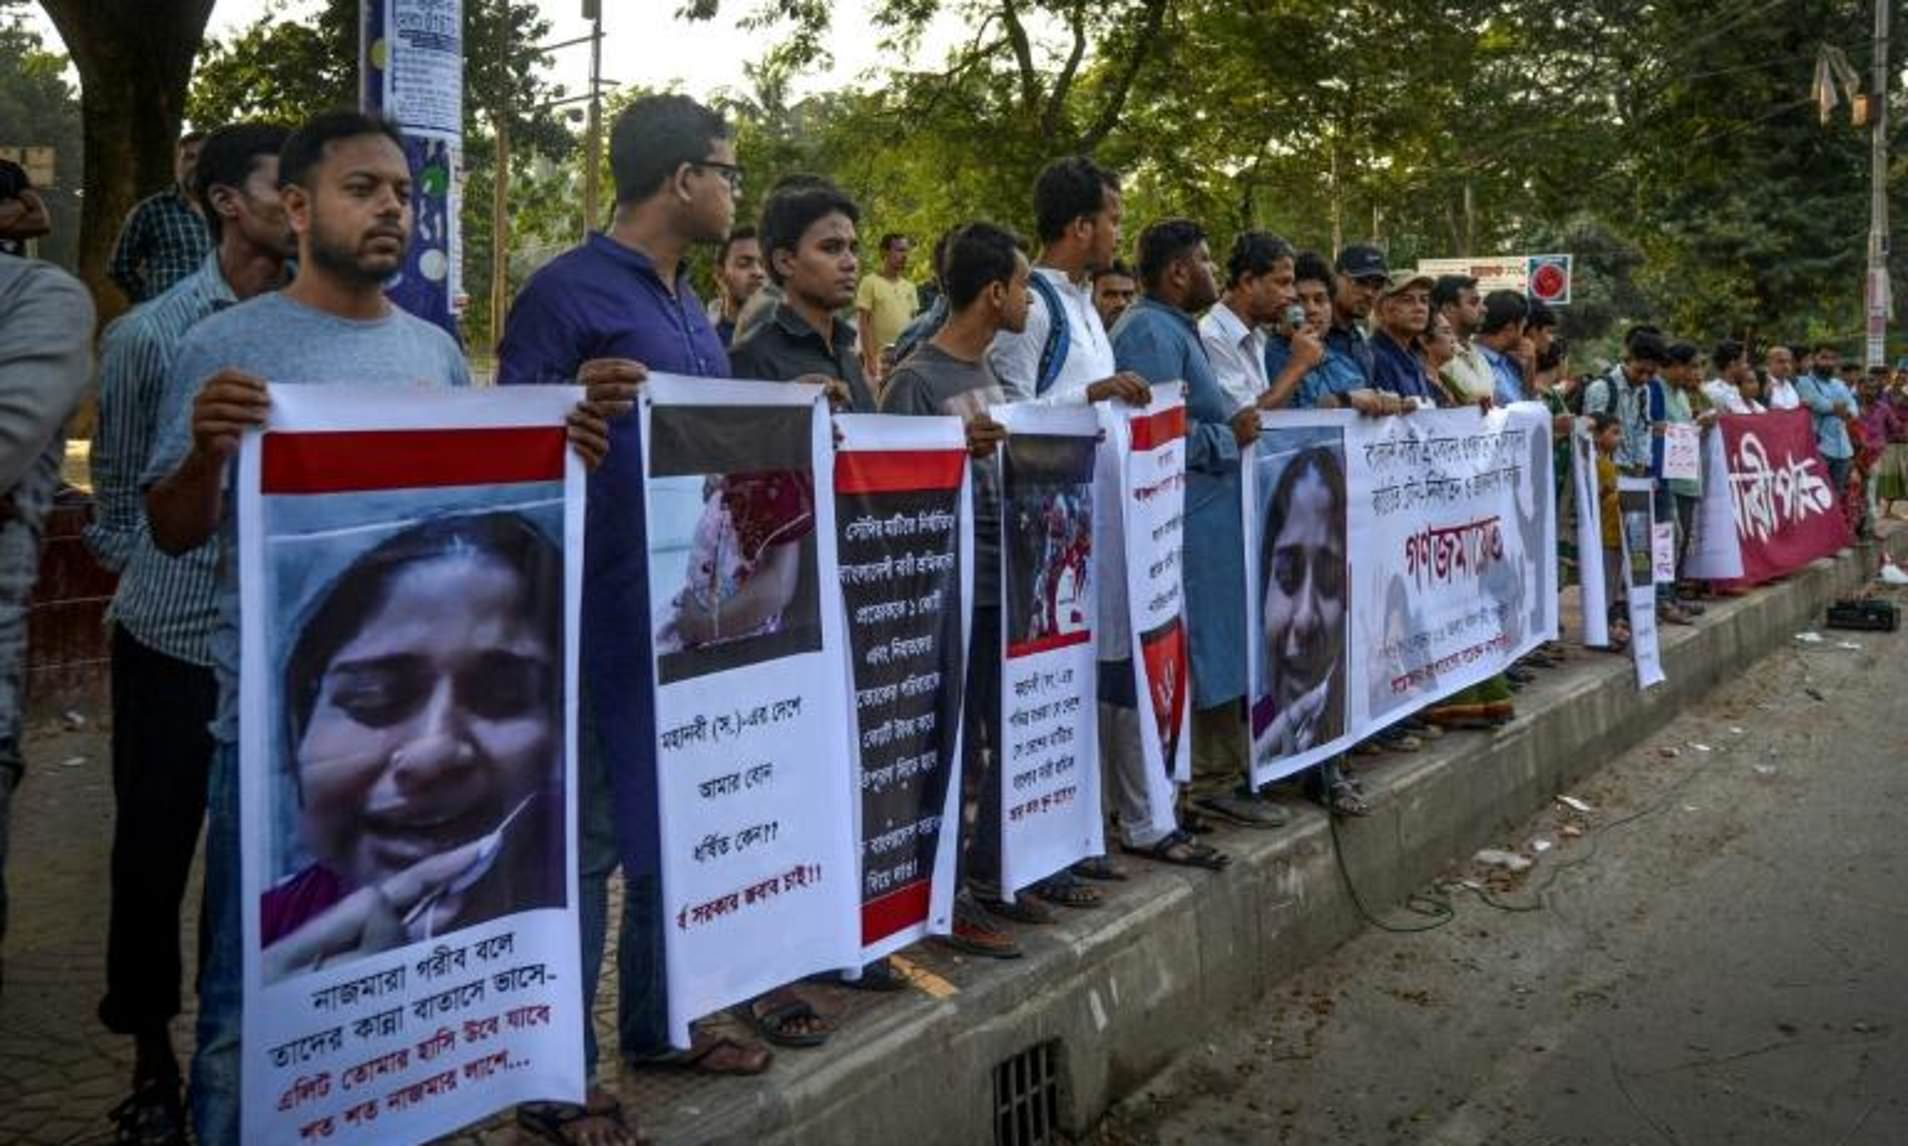 Activists form a human chain in Dhaka to protest and raise awareness for Bangladeshi female migrant workers that can face various forms of abuse, including physical, psychological and even sexual abuse by employers in Saudi Arabia